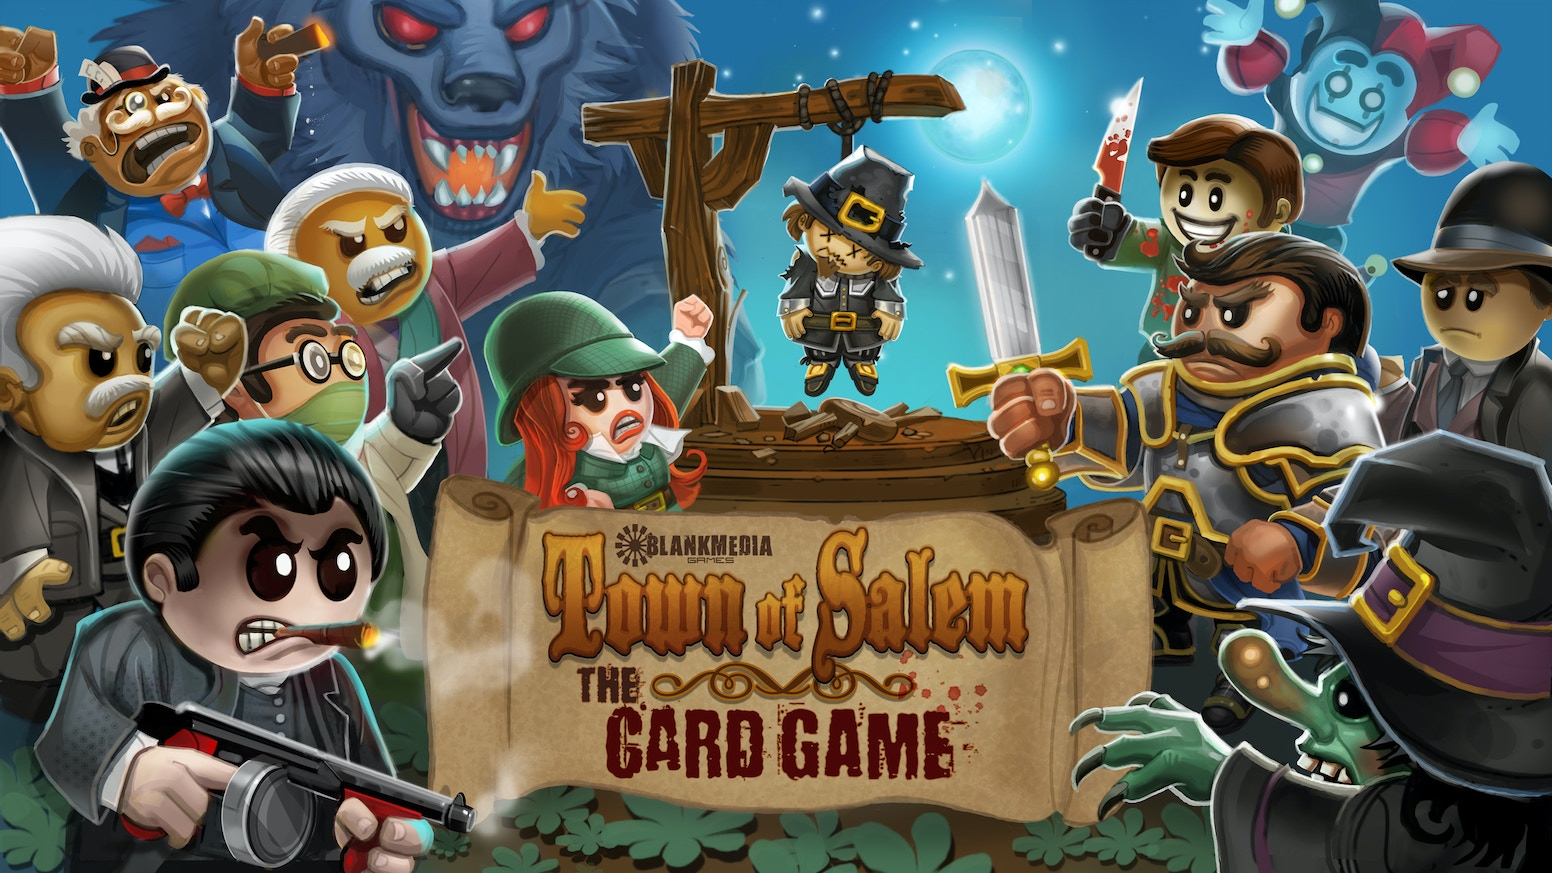 This brand new card game is for people who like hanging their friends, werewolves, pilgrims and fancy witch hats.